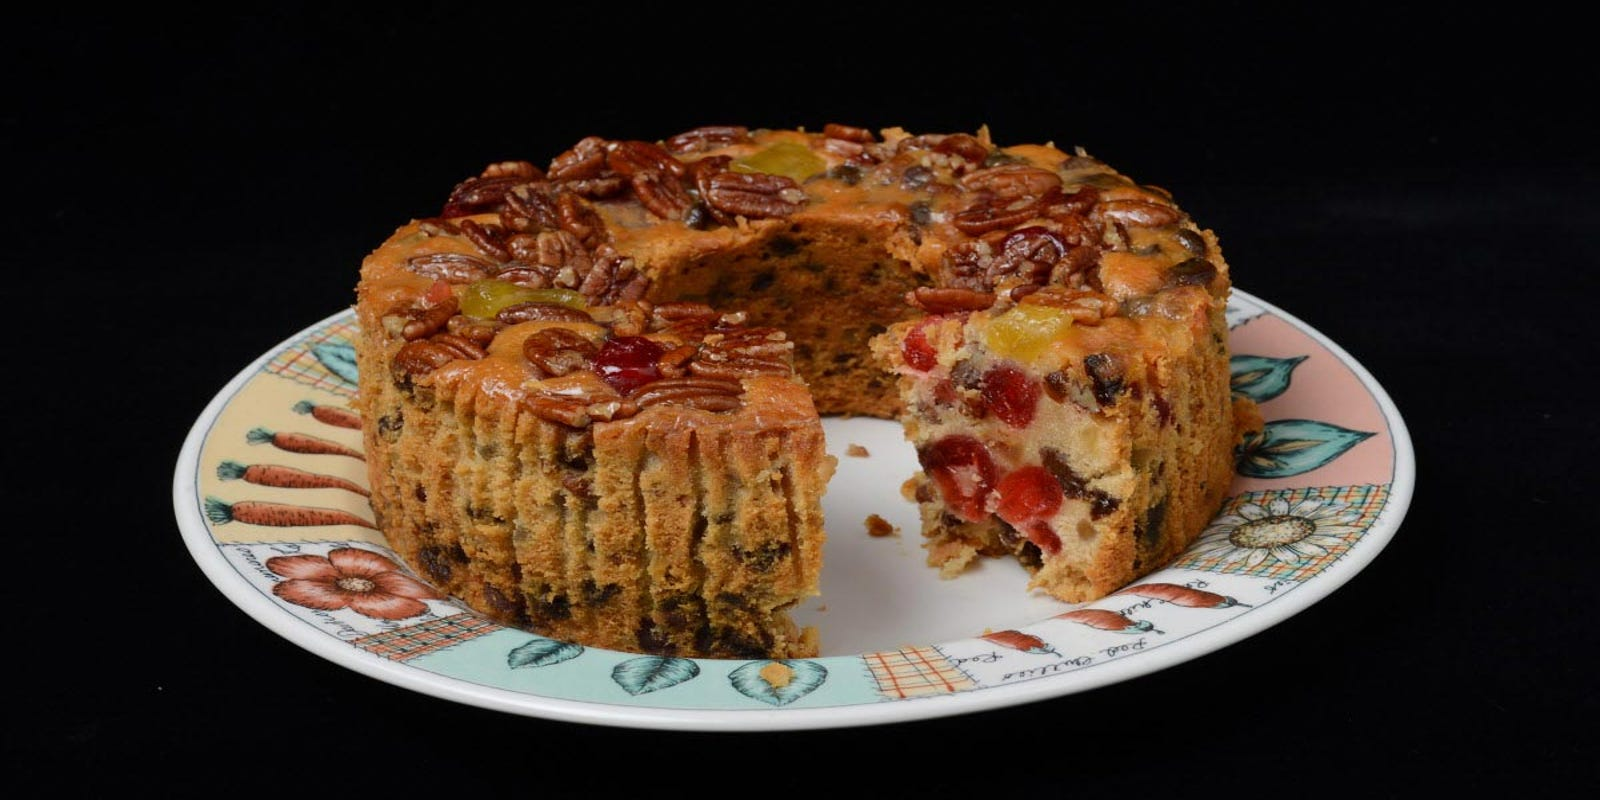 Amazing Vintage Ap Fruitcake Recipe And Brand Name For Sale Funny Birthday Cards Online Chimdamsfinfo